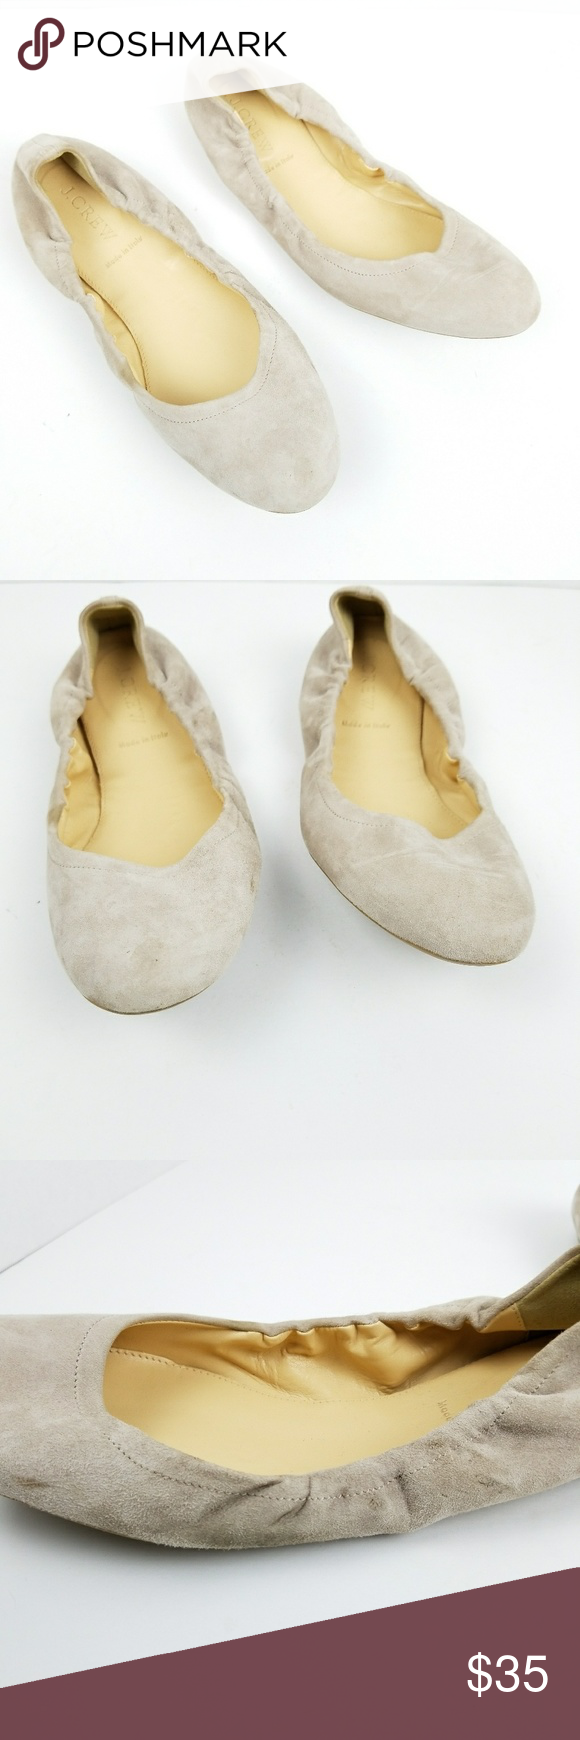 J Crew Womens 9.5 Emmie Ballet Flats Leather Suede